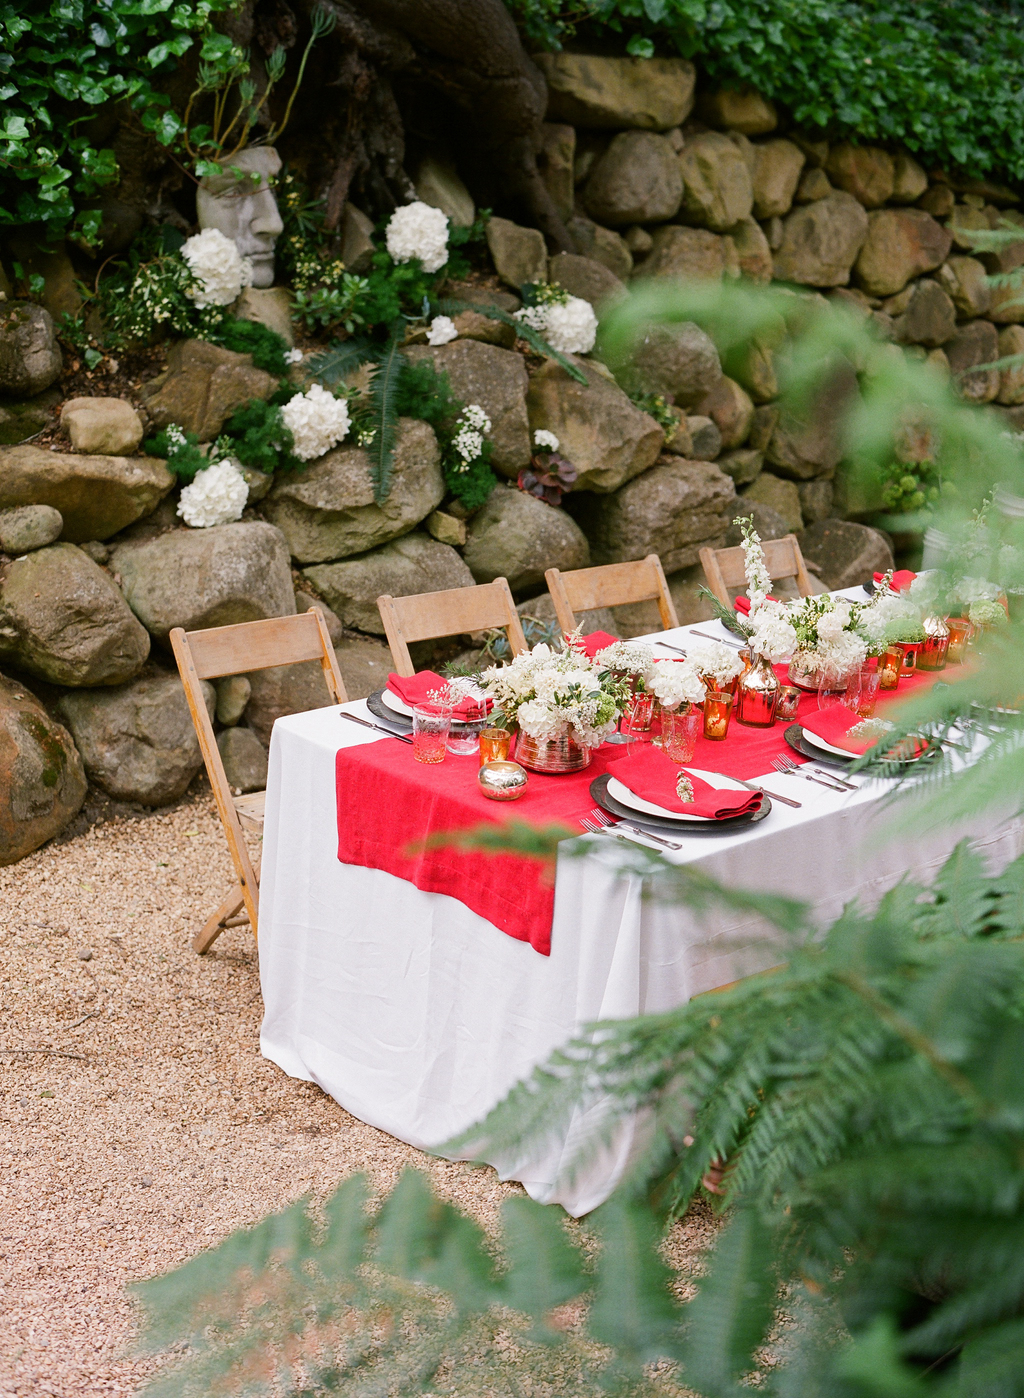 Styled-wedding-santa-barbara-chic-beaux-arts-photographie-italian-bohemian-wedding-venue-table-setting-red-white-flowers-antique-glass-101.full